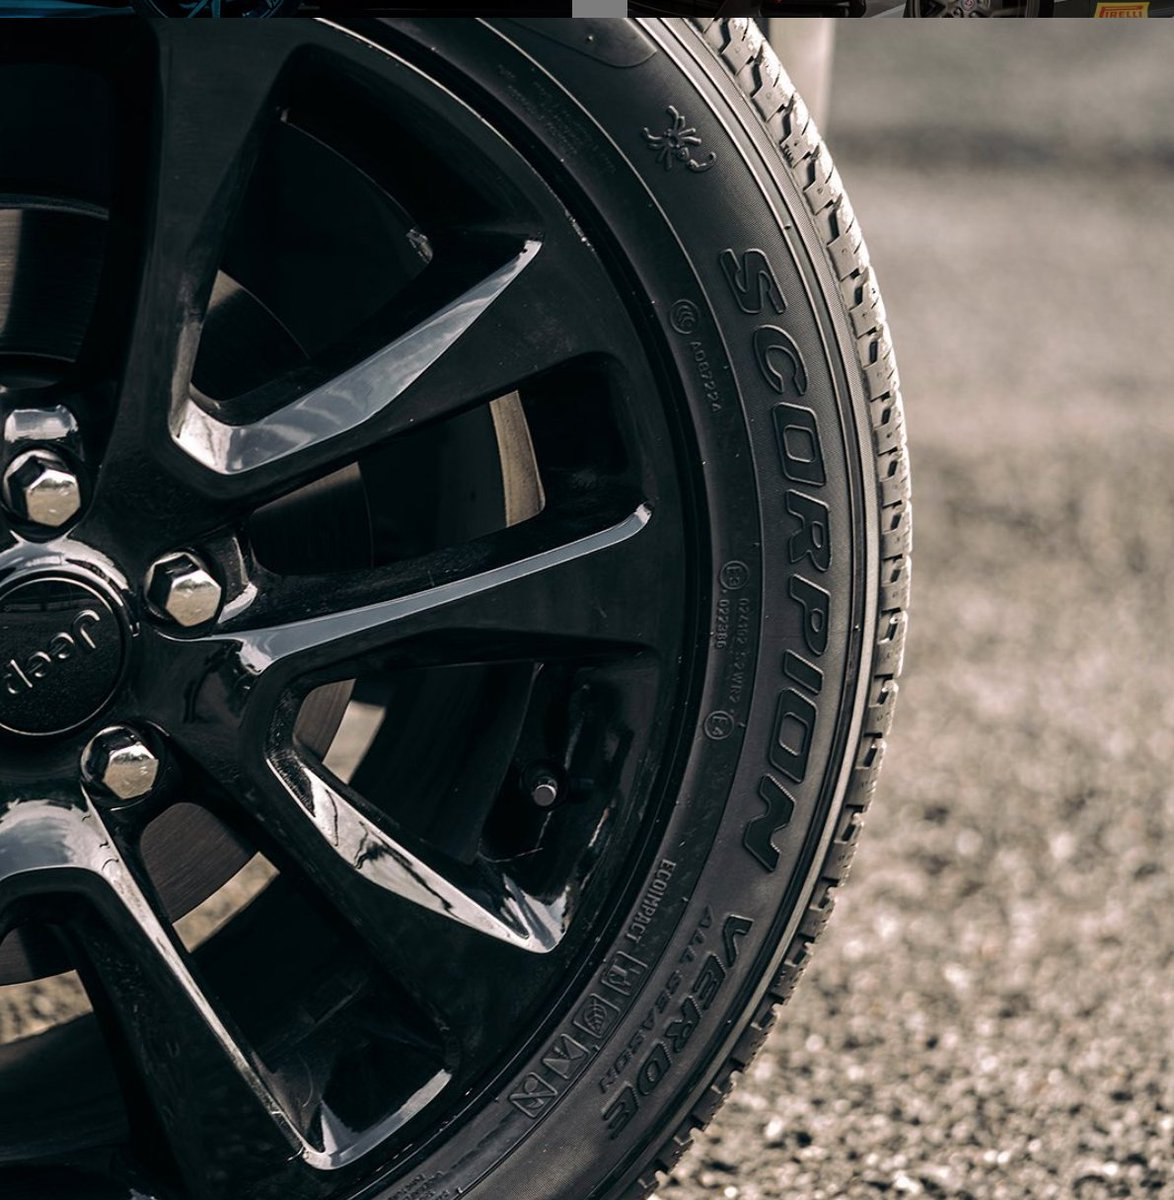 Summer is winding down - time to switch over to some #allseasontires like the #pirelli Scoprion Verde.⁠ ⁠ https://t.co/AFFWUfW4xC  📸: @PirelliUSA   #car #tires #speed #pzero #pirelliworldchallenge #wheels #rims #tyres #autocrazeau #autocraze #lifestyle #jdm #simpletire https://t.co/A5wjyNYEcg